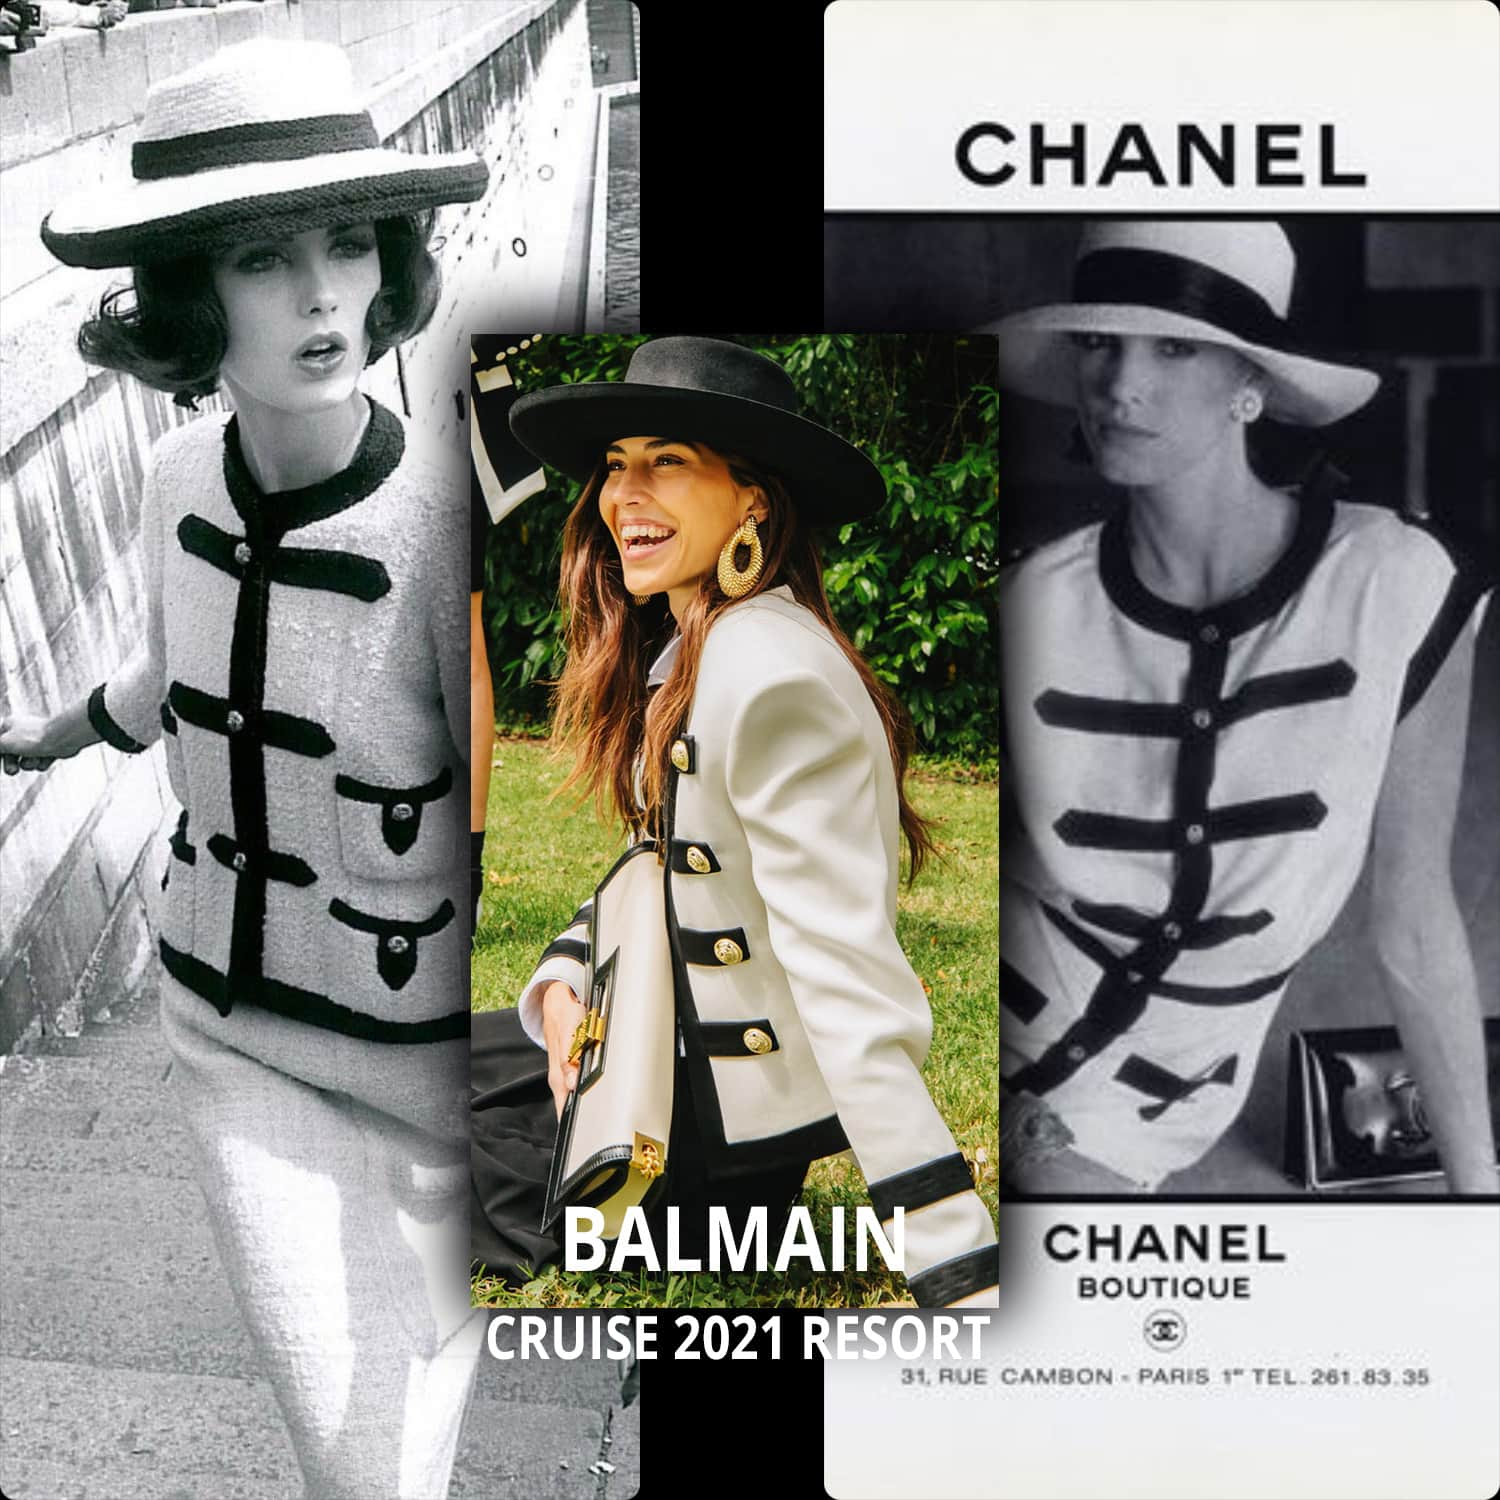 Balmain Cruise 2021 vs CHANEL classic